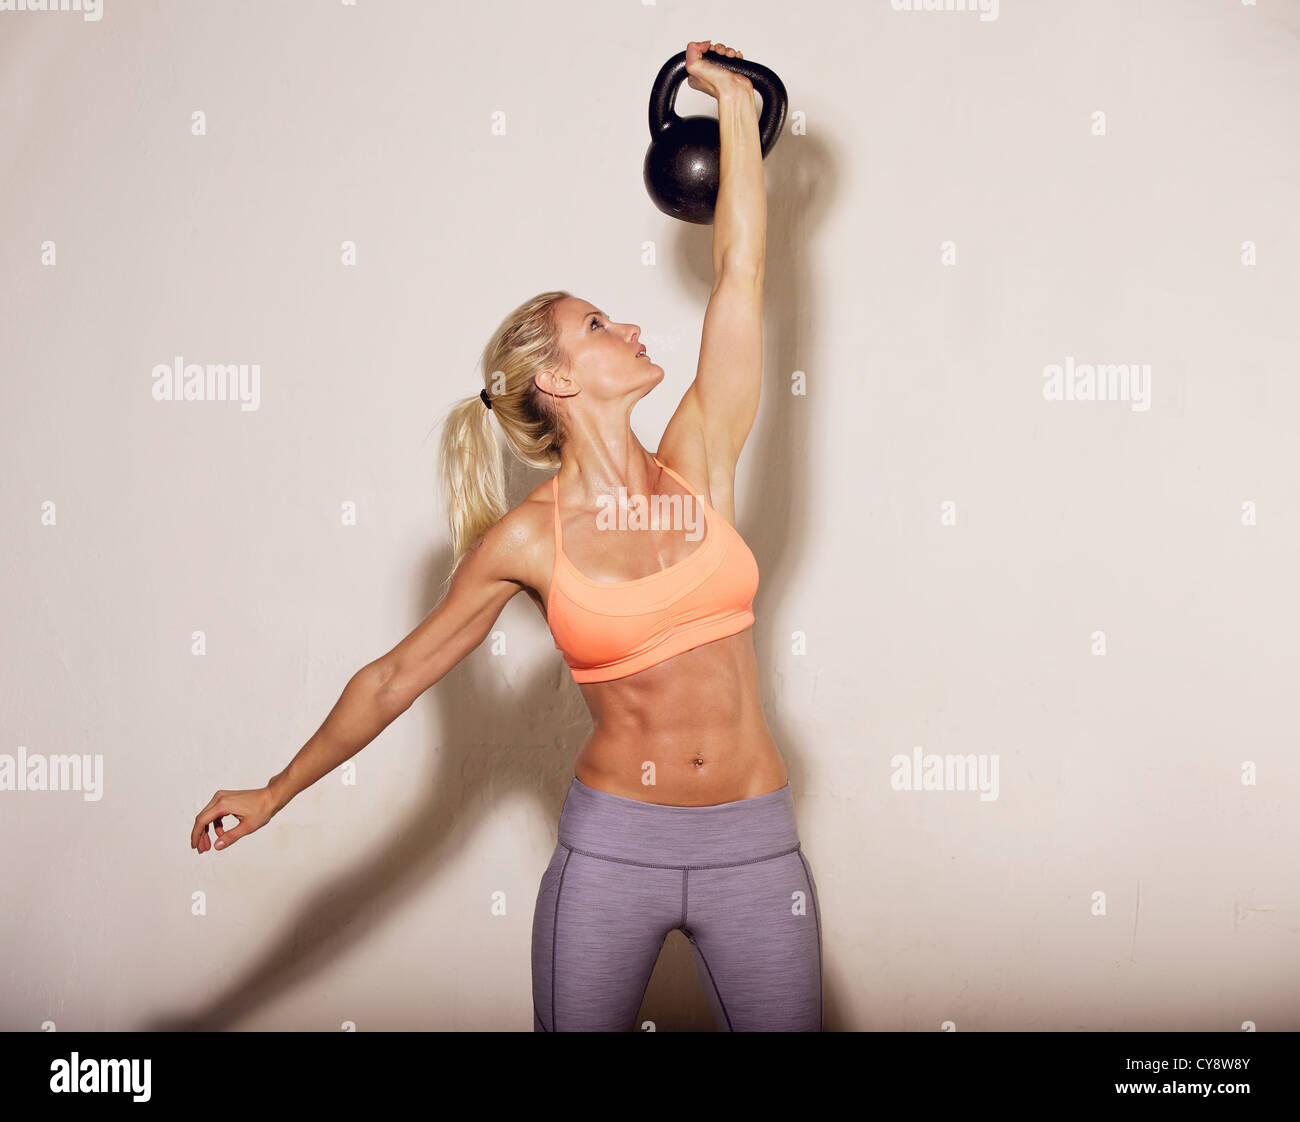 Woman doing her kettlebell crossfit workout - Stock Image